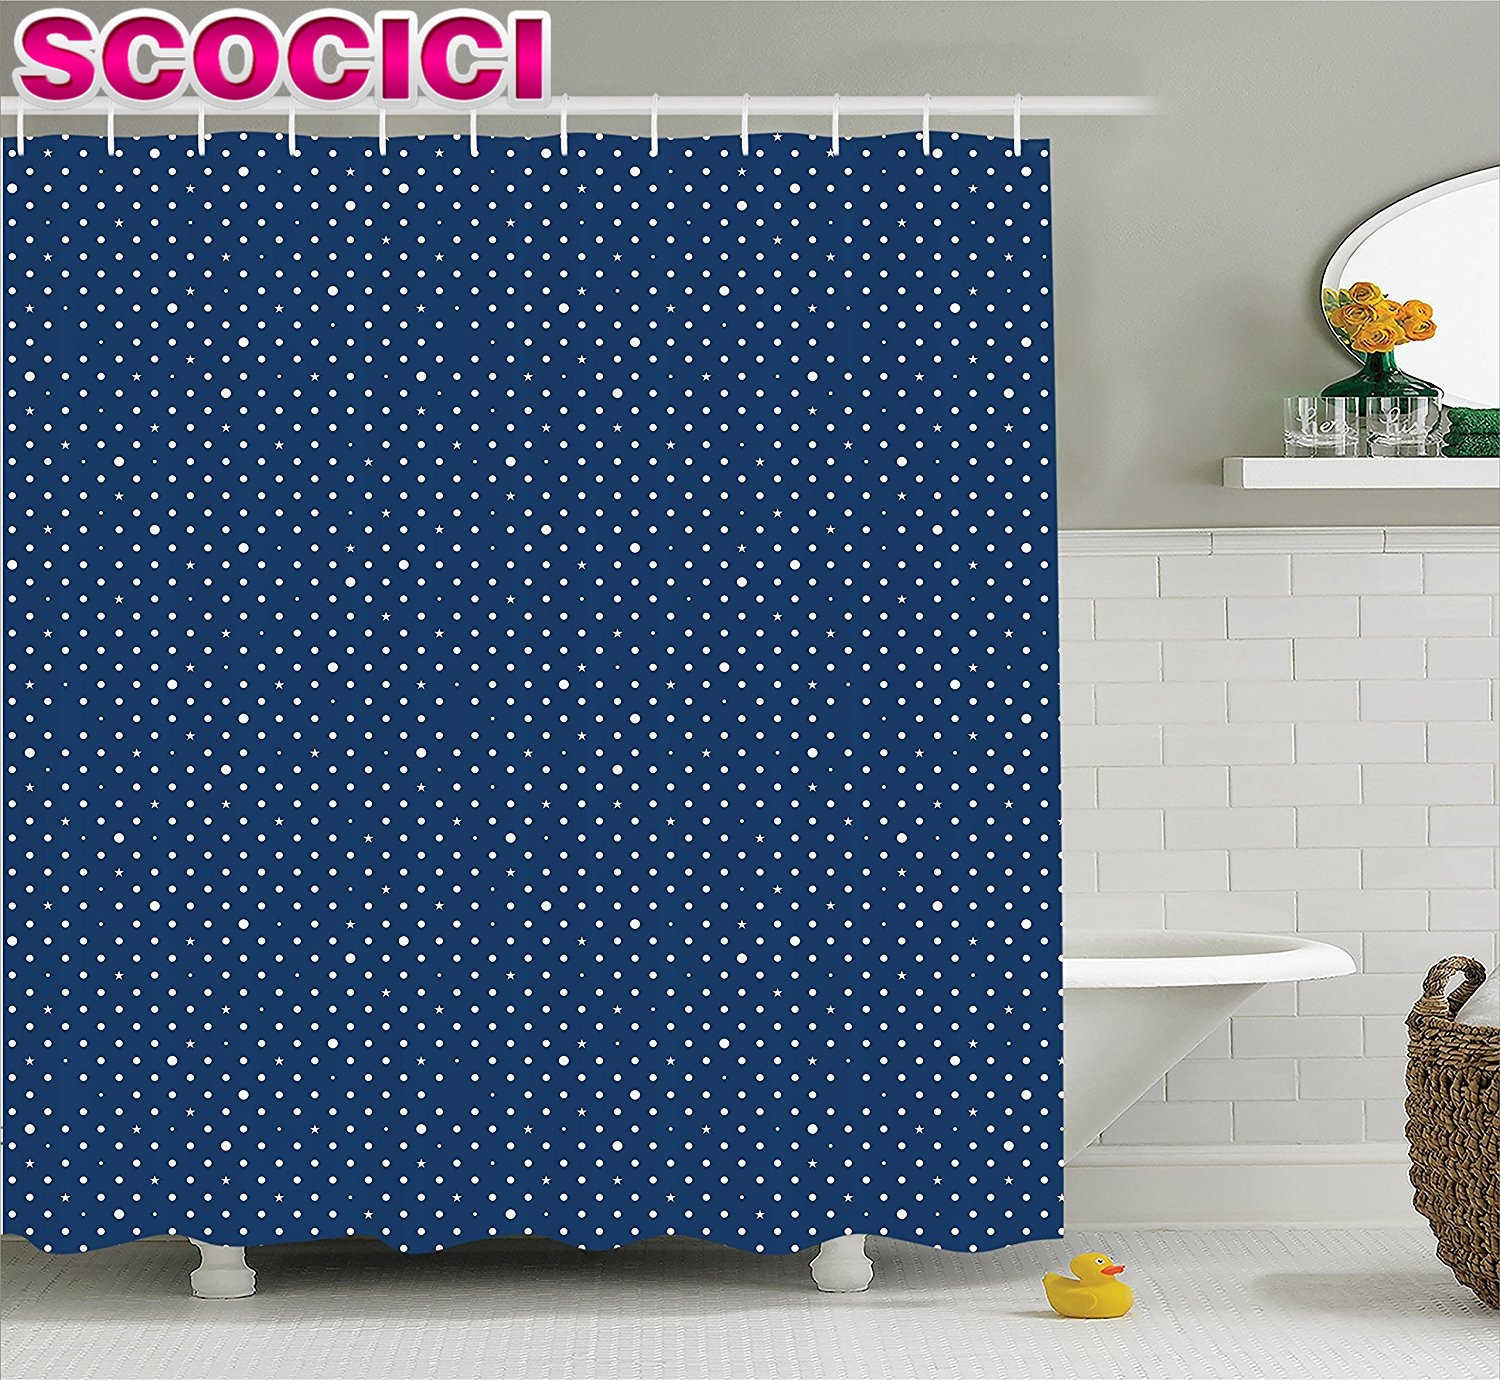 Navy Blue And White Polka Dot Shower Curtain Curtain Menzilperde In Navy And White Polka Dot Curtains (Image 17 of 25)